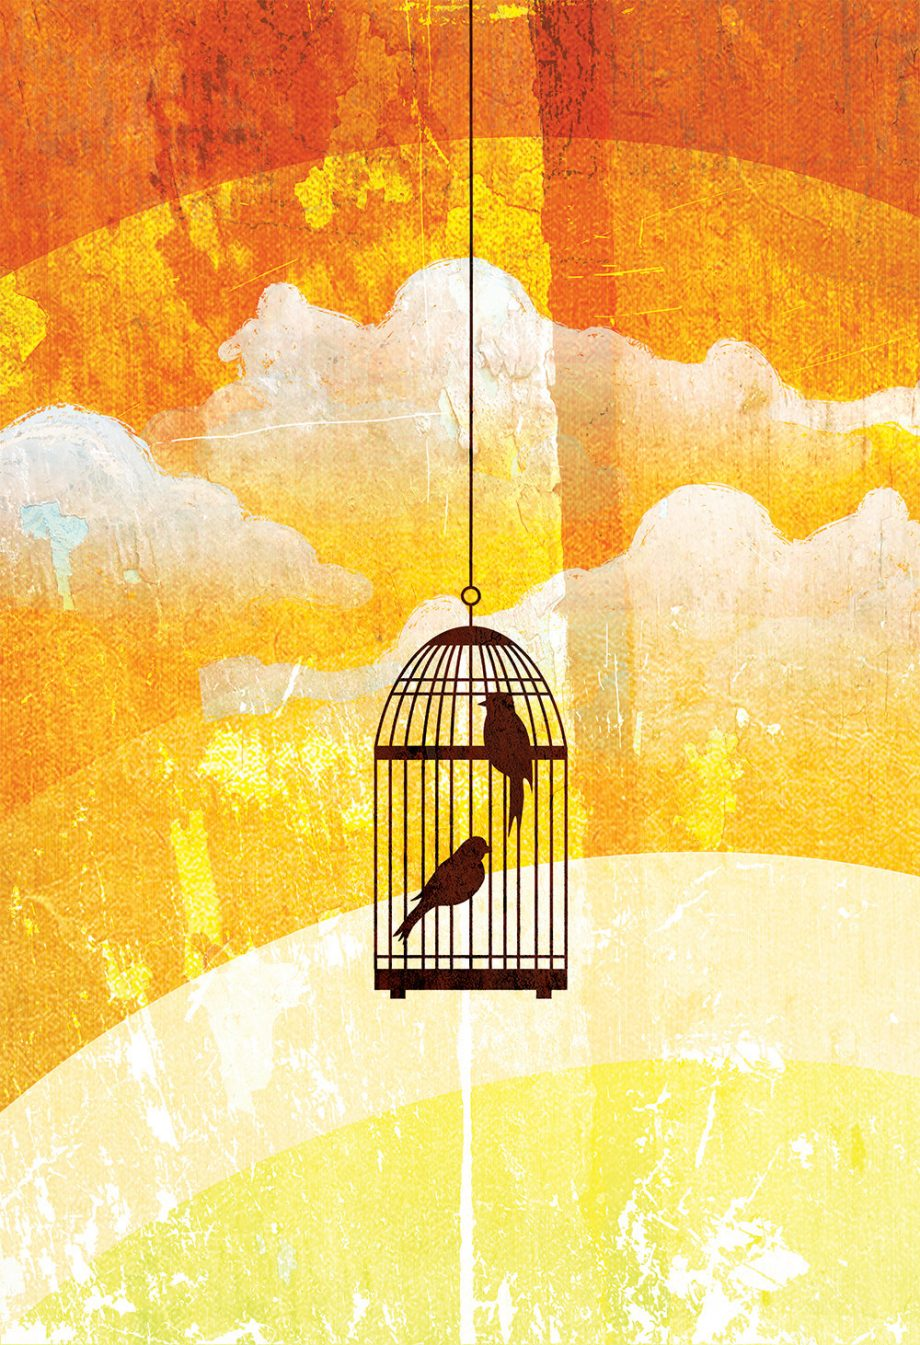 bird-cage-abstract-art-print-illustration-art-print-giclee-on-cotton-canvas-and-paper-canvas-poster-wall-decor-5817b6002.jpg